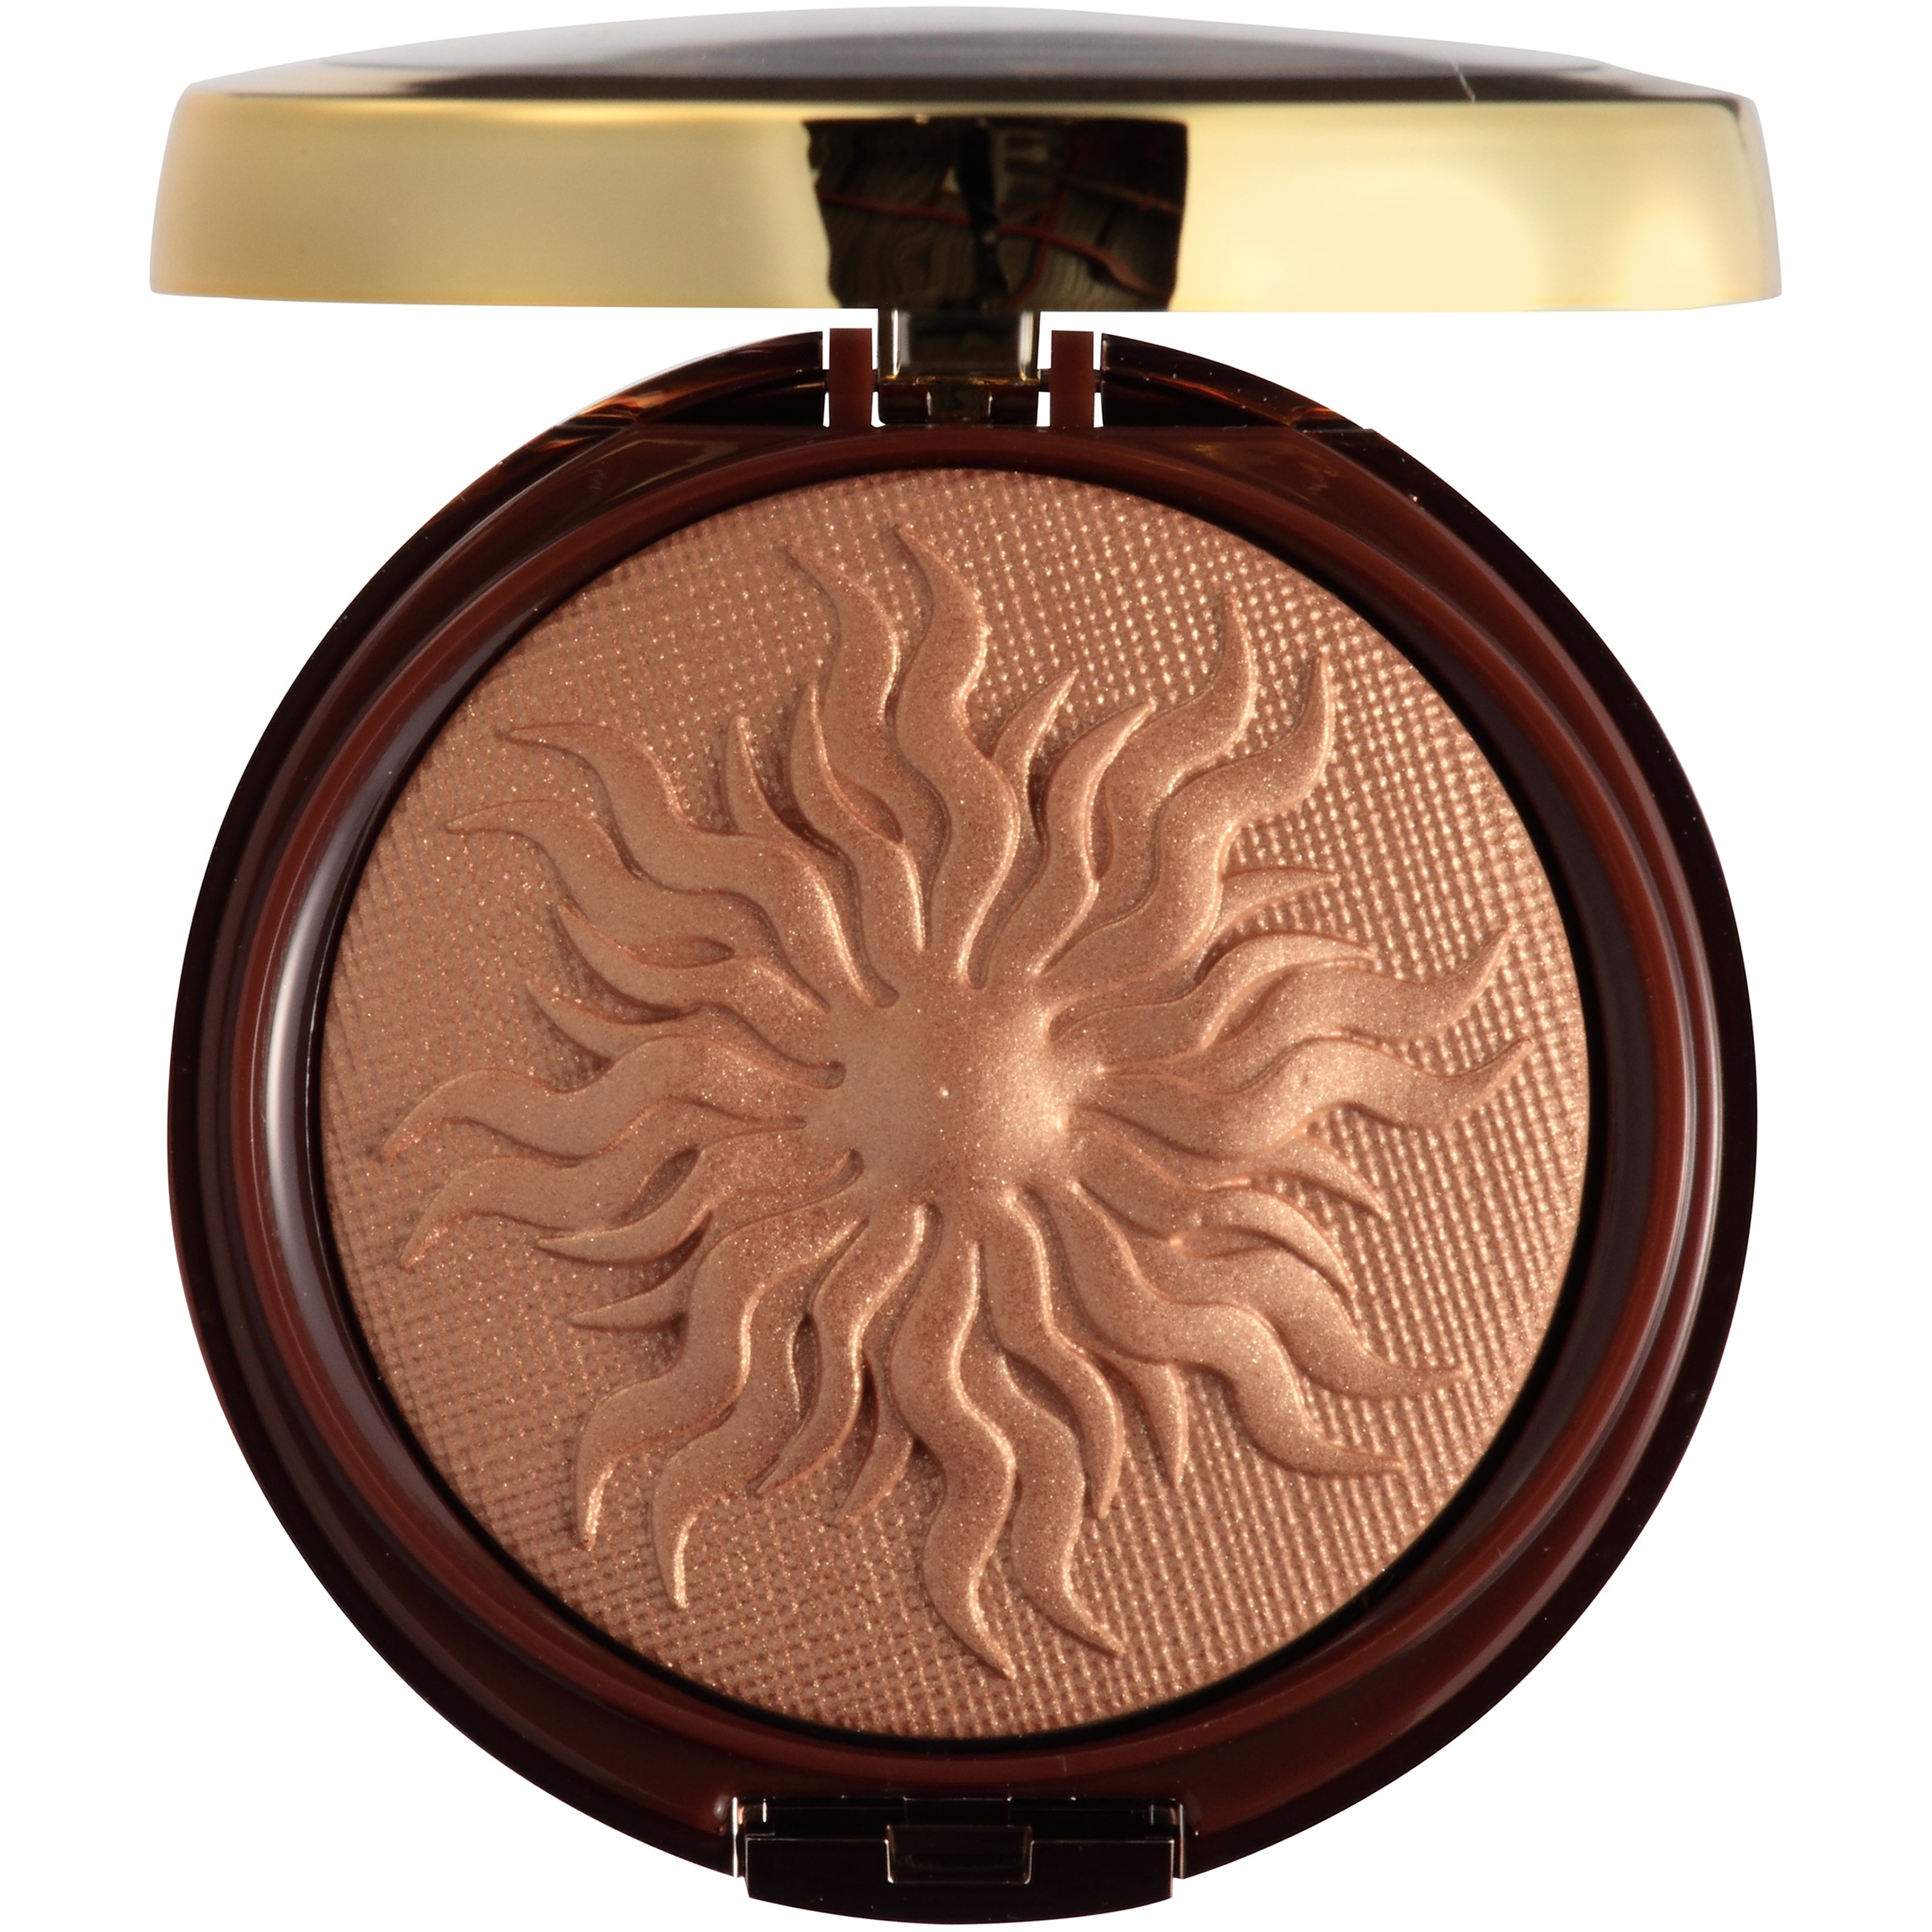 Physicians Formula Bronze Booster Glow-Boosting Airbrushing Bronzing Veil Deluxe Edition - Light to Medium